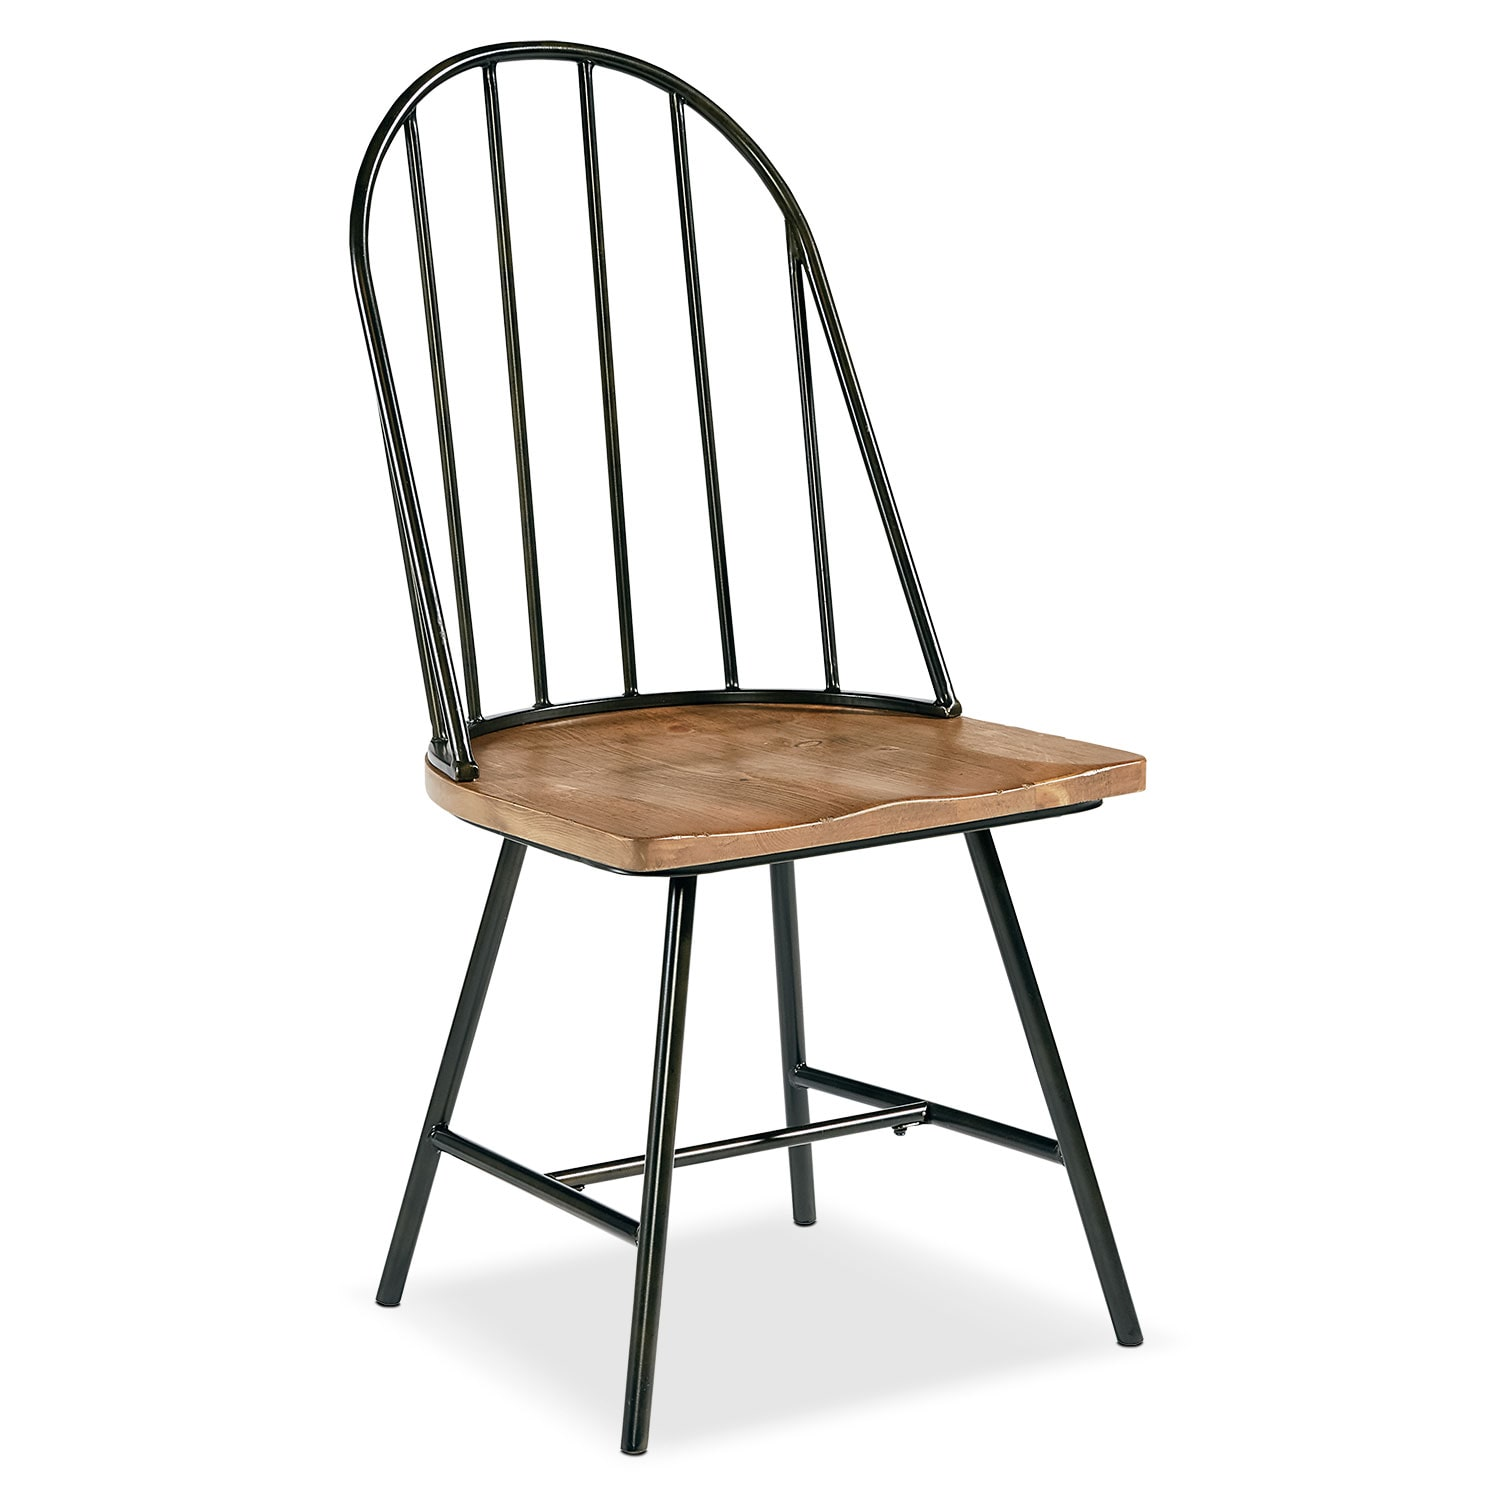 white metal and wood chairs office chair rug shop primitive furniture magnolia home value city